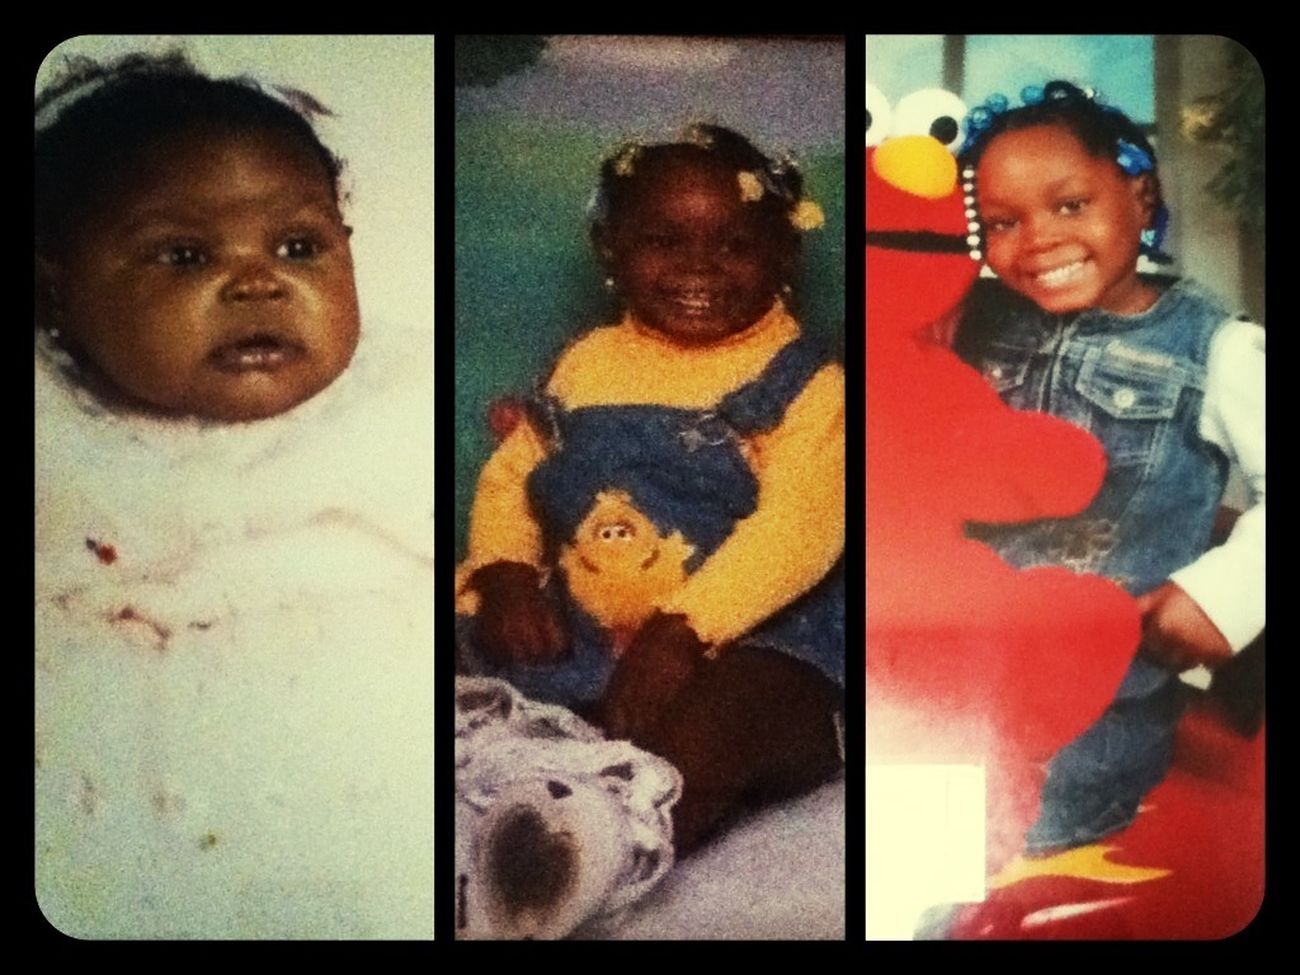 #Mhee #Younger #Day13 # FatBaby